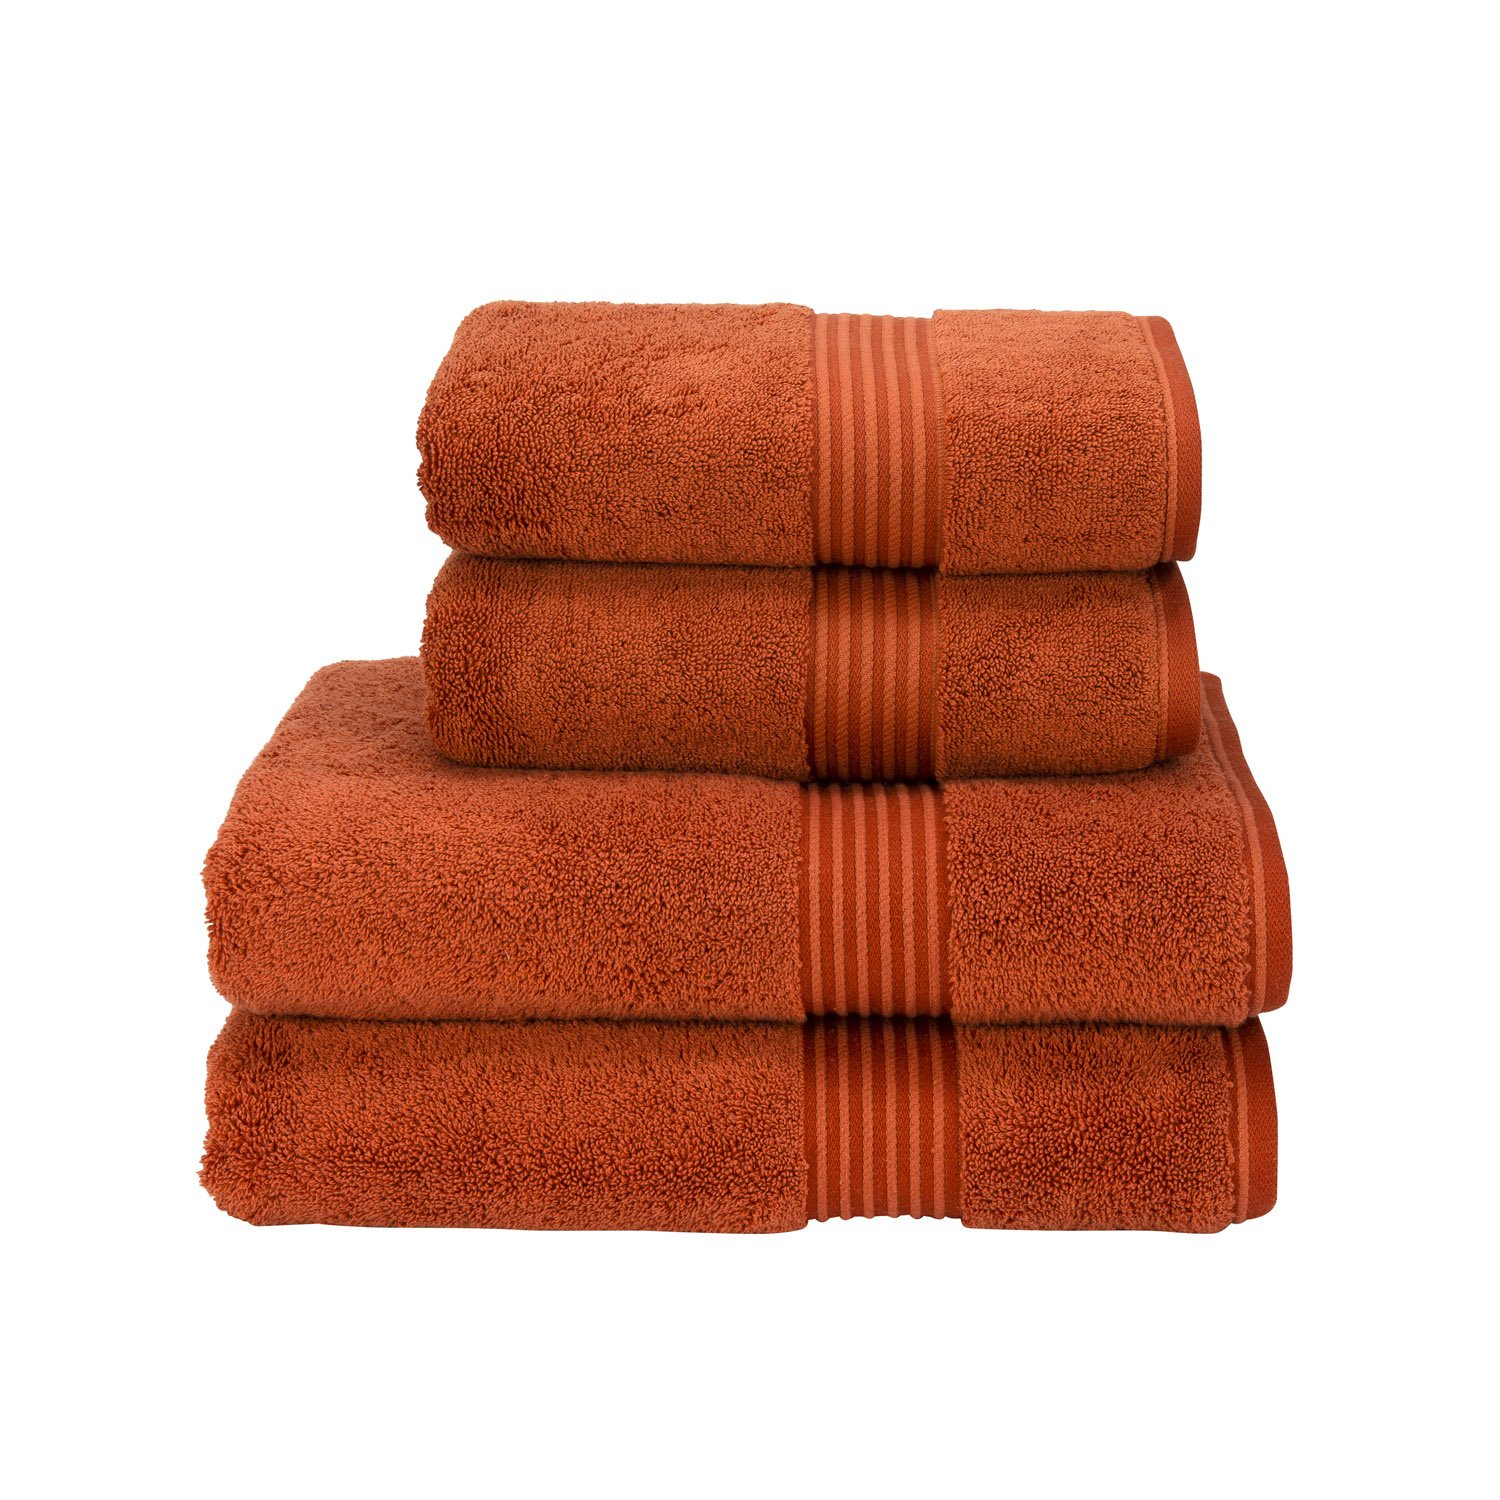 Christy Supreme Hygro Bathroom Towels 650 gsm 100% Cotton Exceptionally absorbent (Face Cloth 33cm x 33cm, Paprika (Orange))